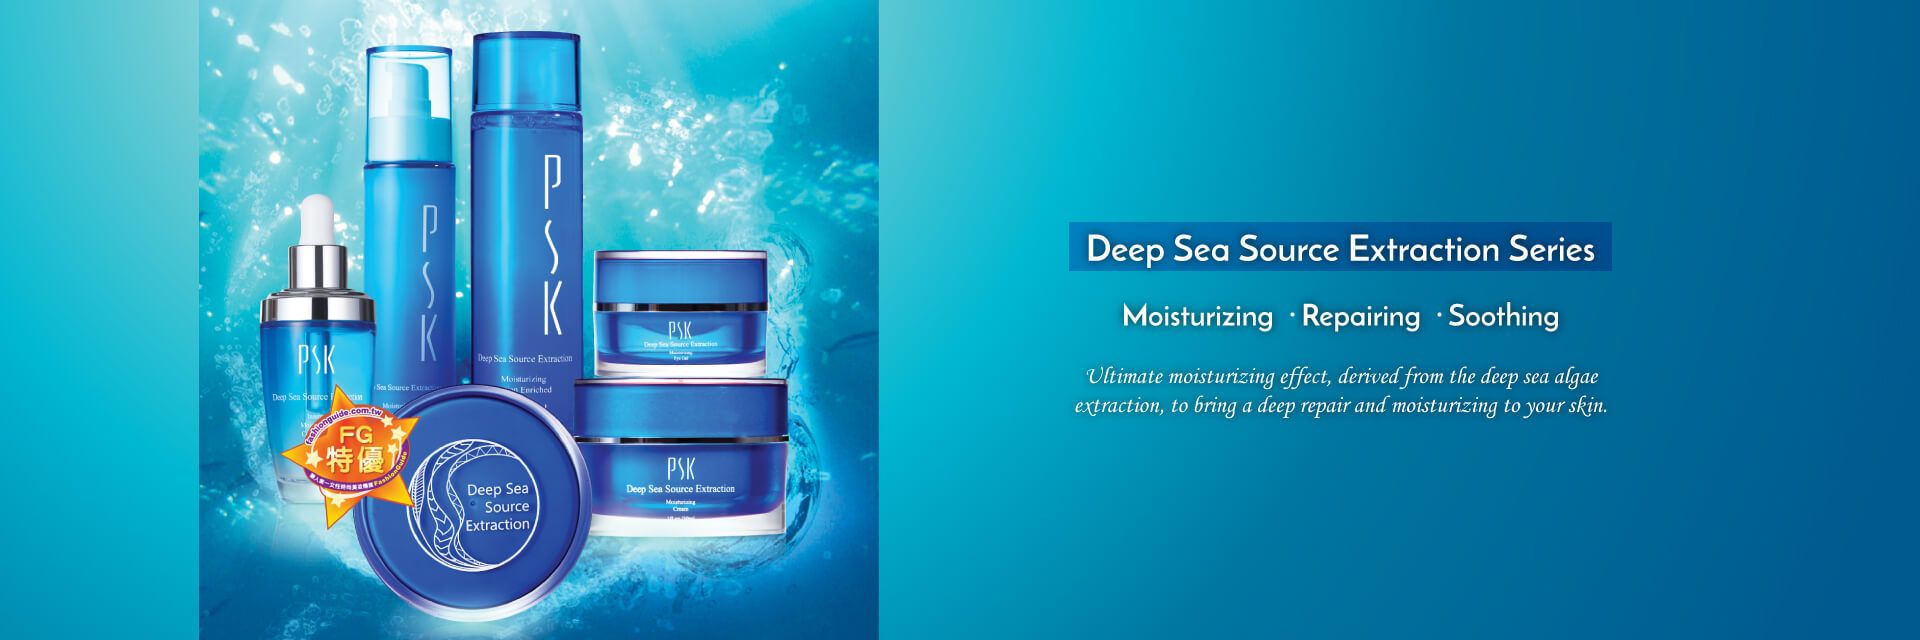 Deep sea Source Extraction Series